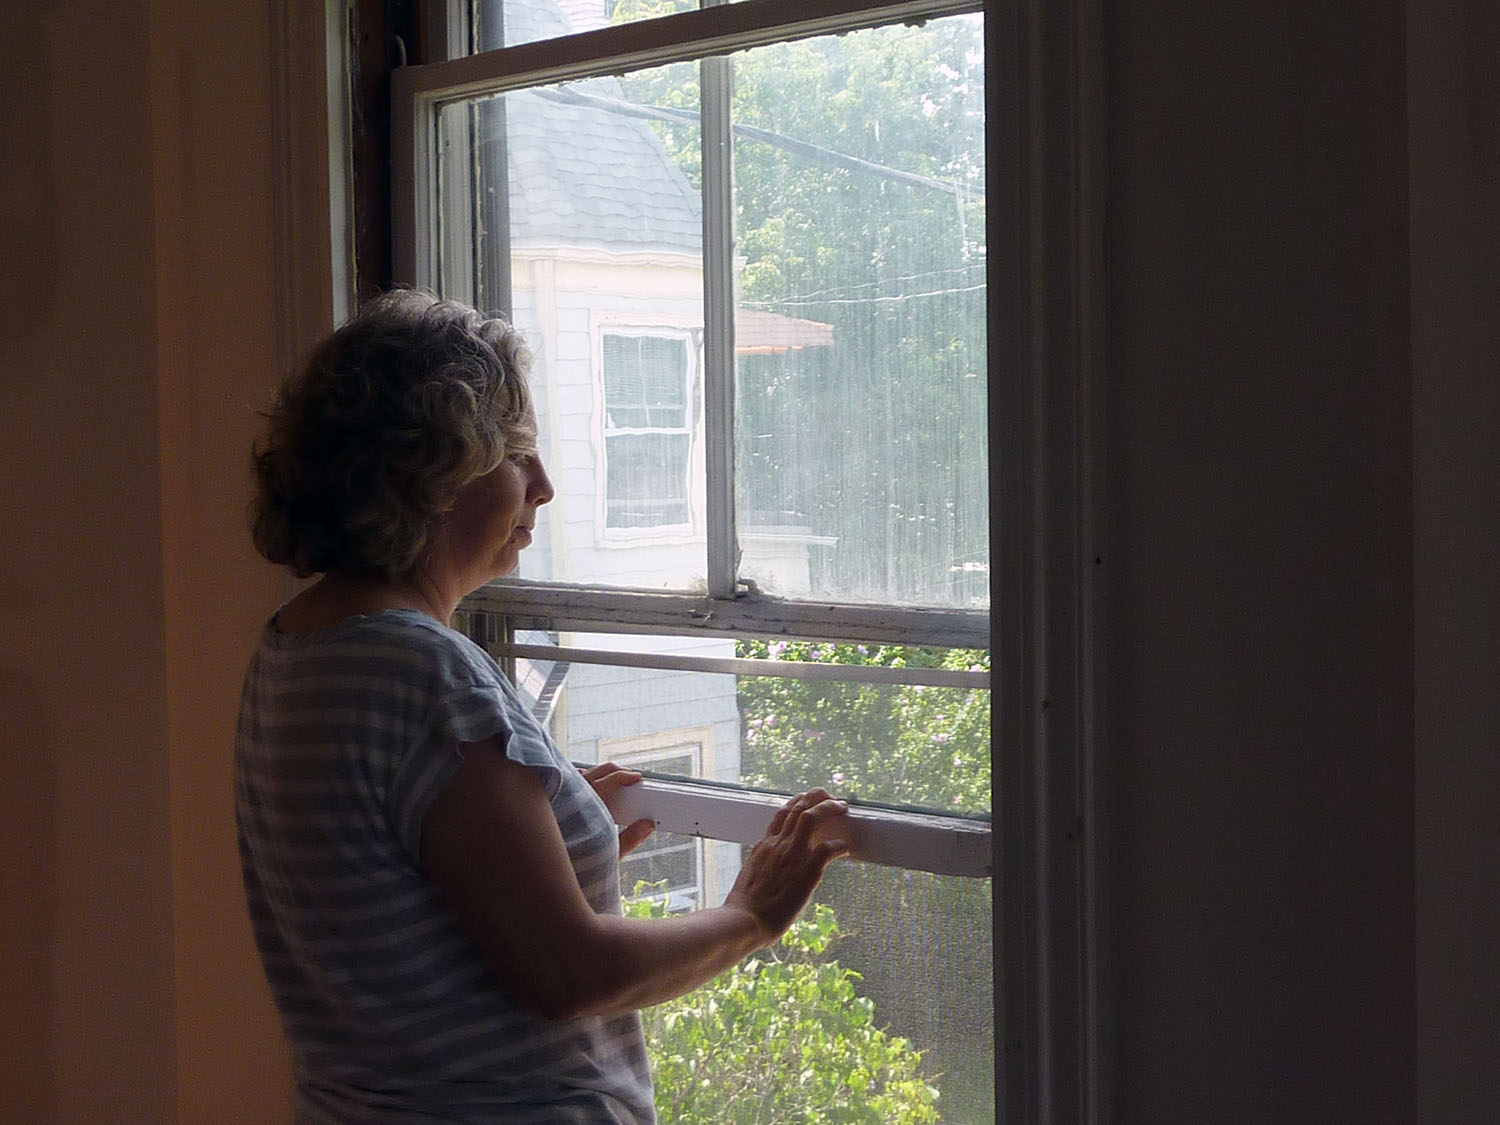 Window restoration has been an ongoing project for Cora.